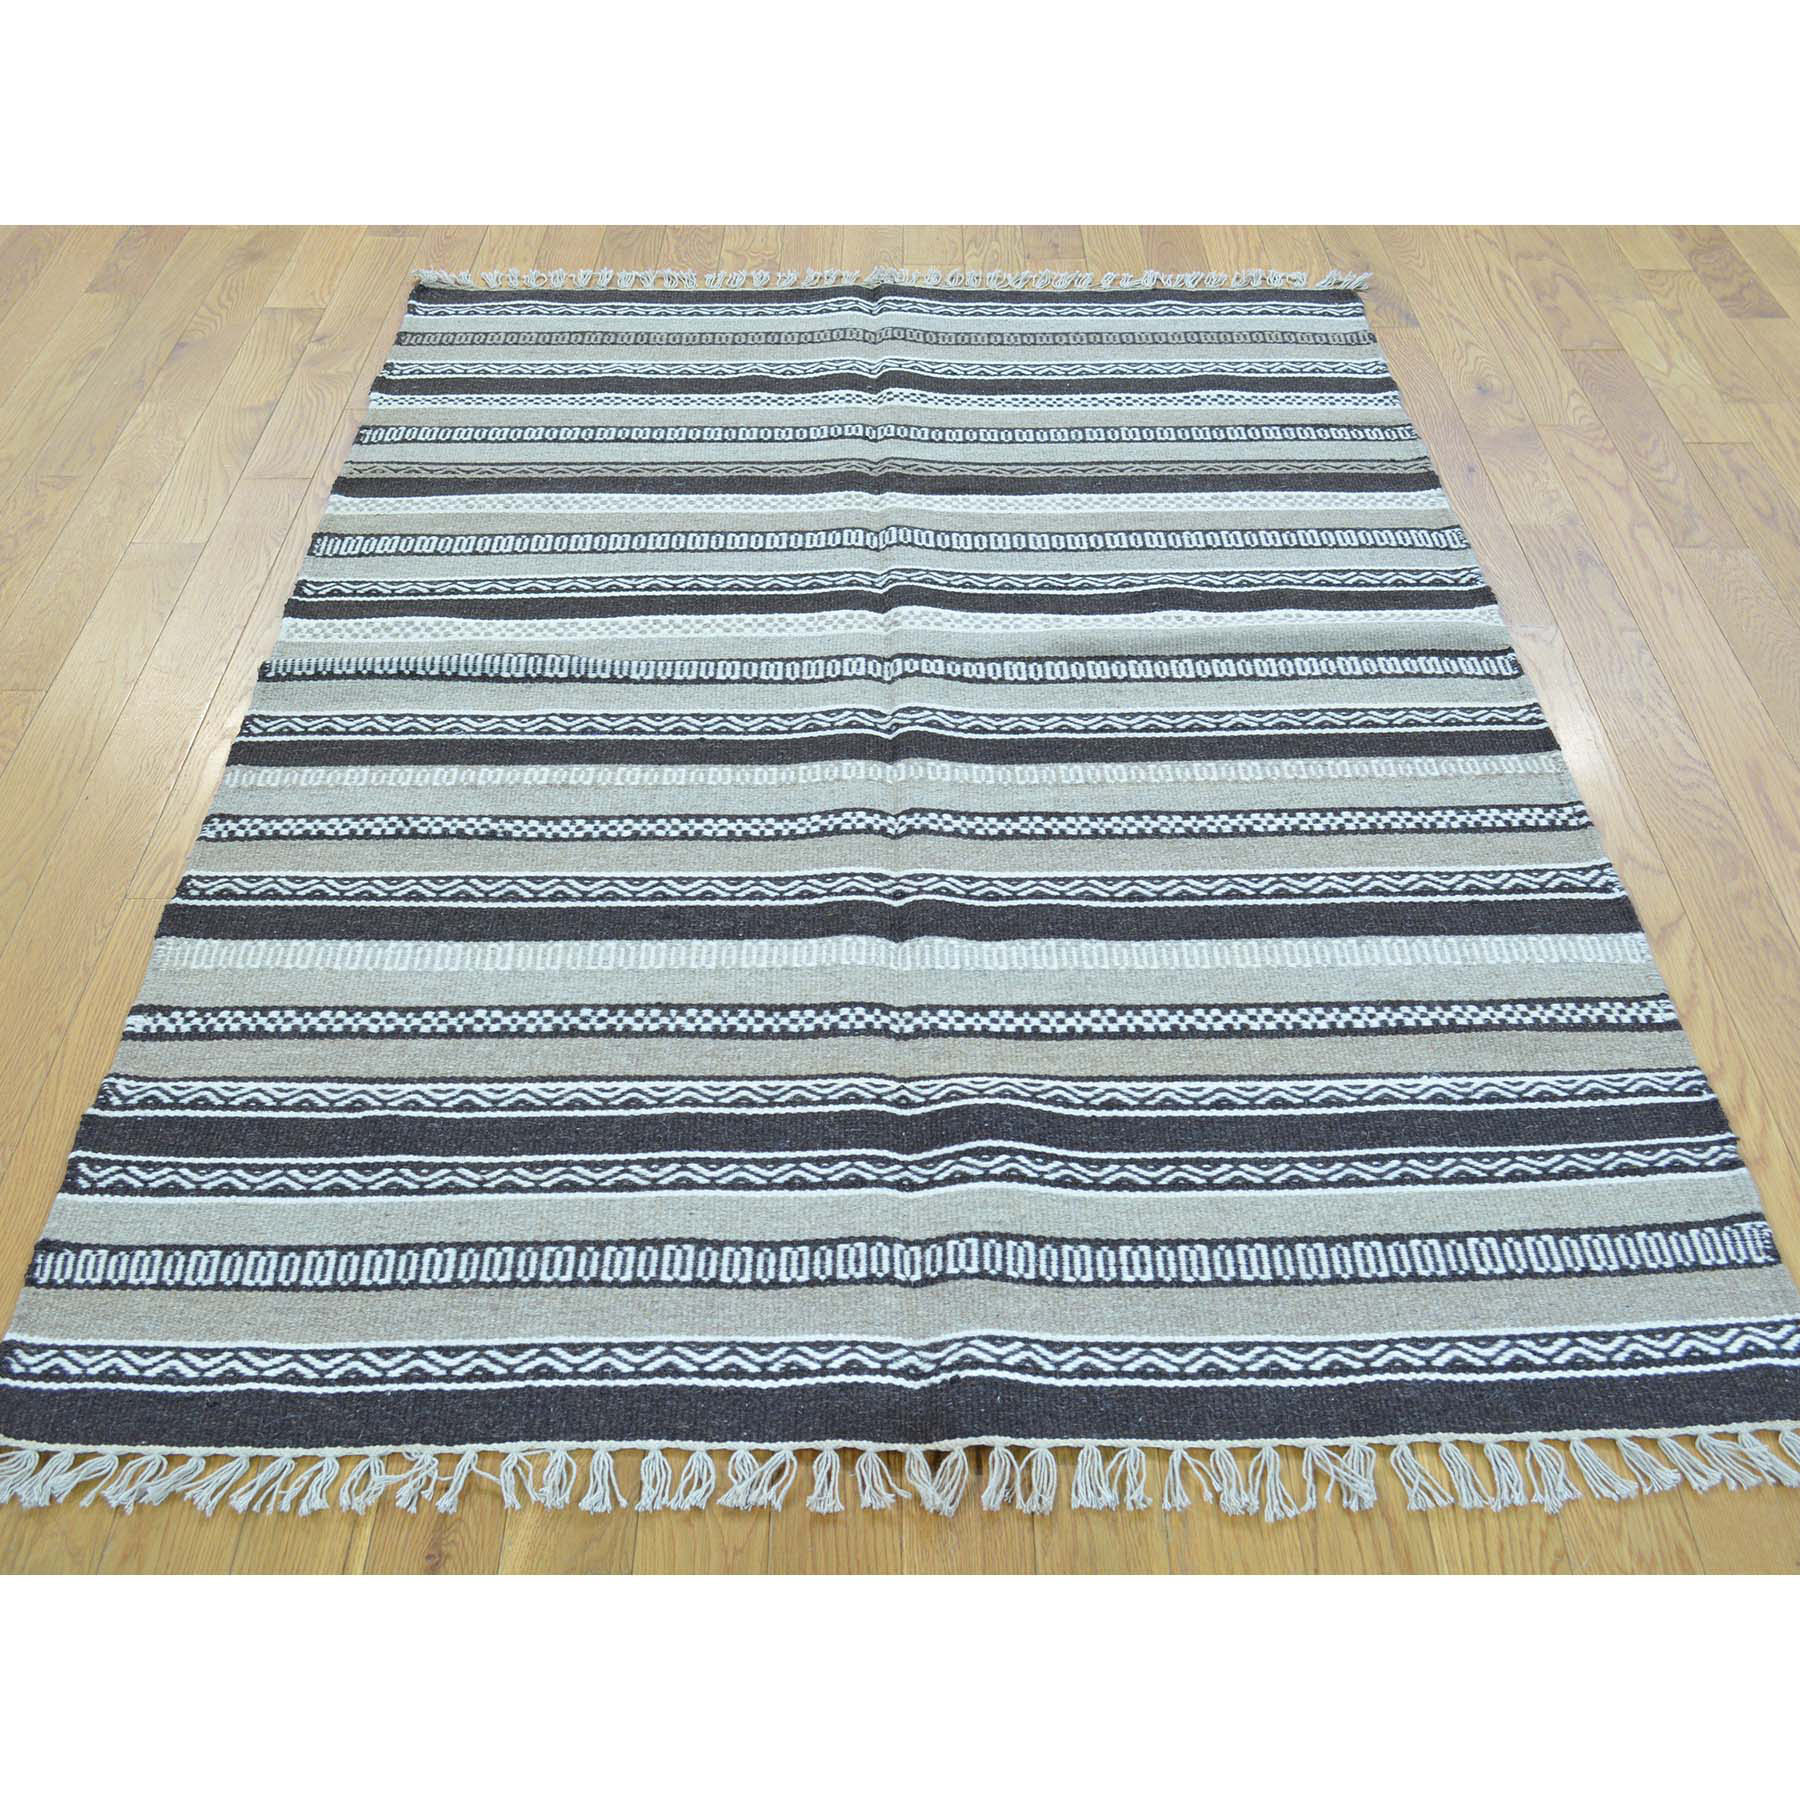 4-x5-10  Flat Weave Reversible Hand Woven Durie Kilim Pure Wool Rug